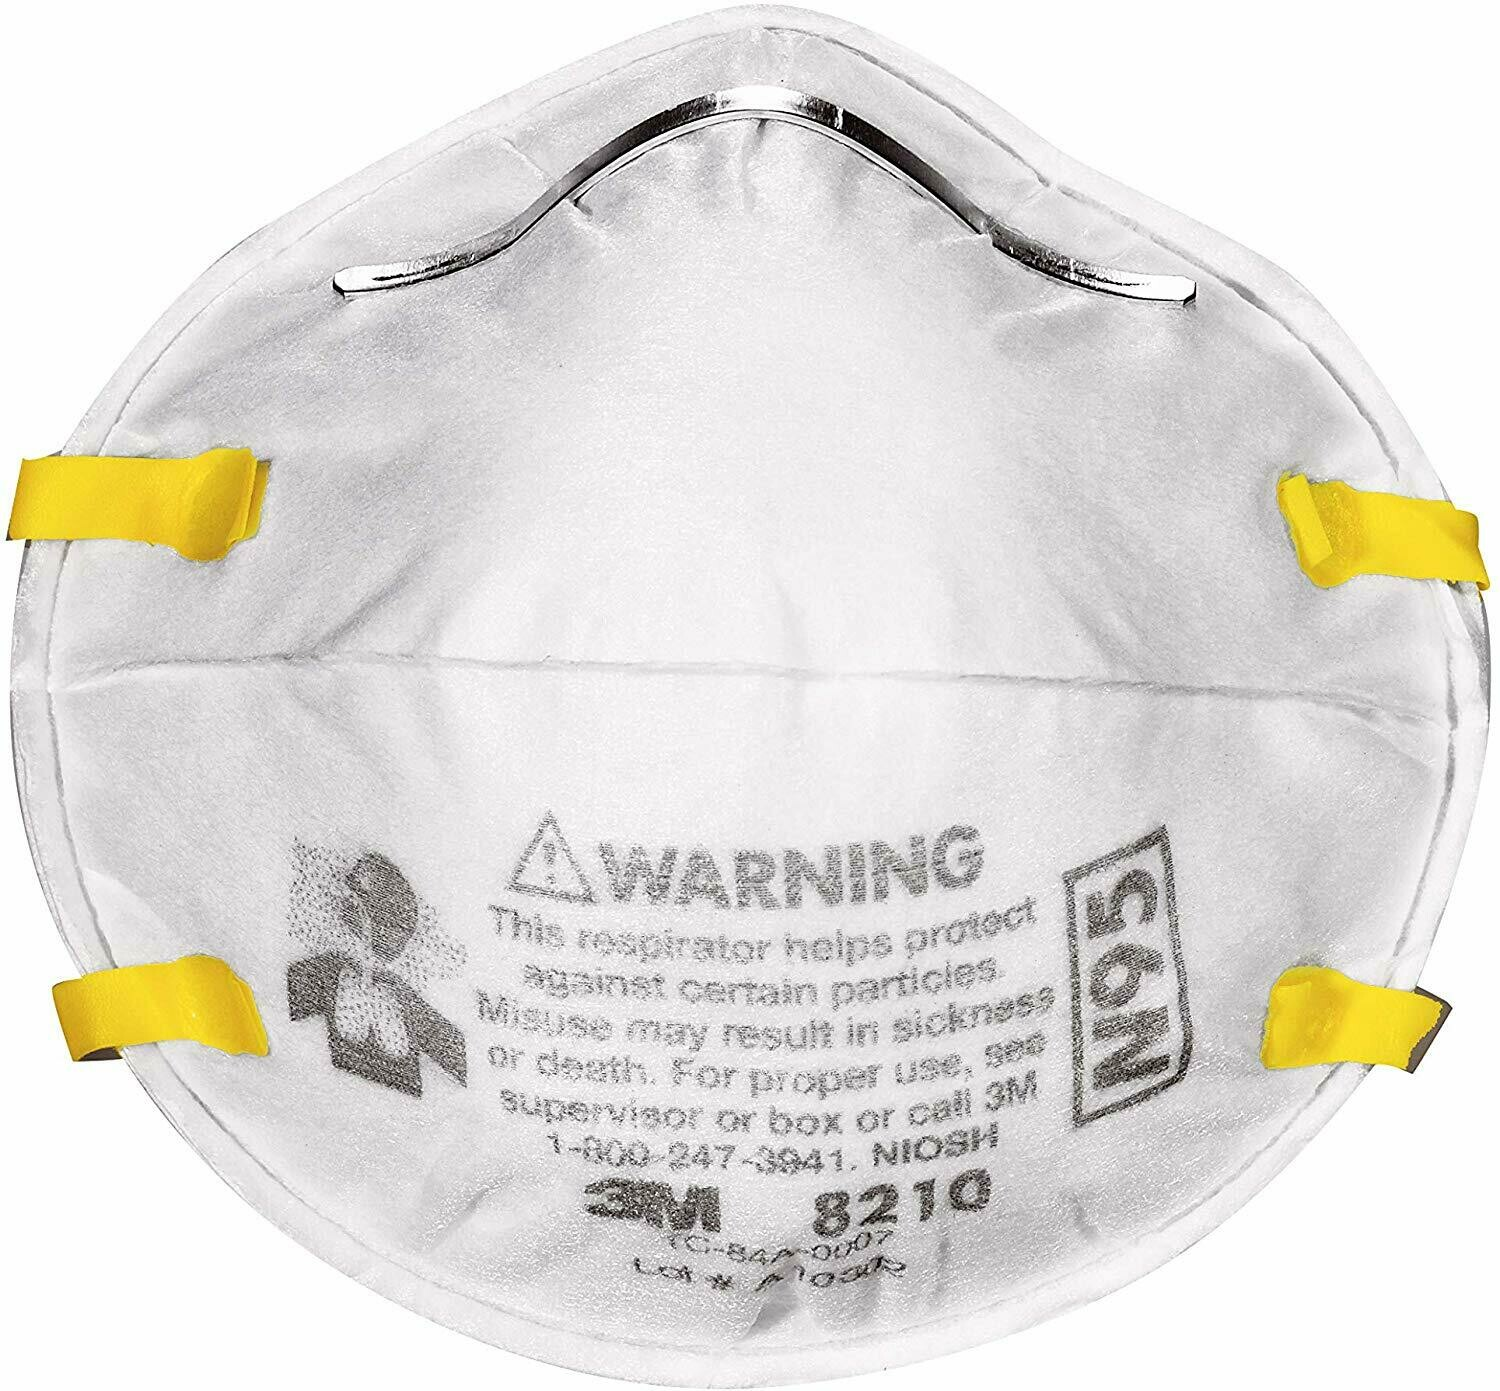 40/Box 3M 8210Plus Pro N95 Particulate Respirator Face Mask